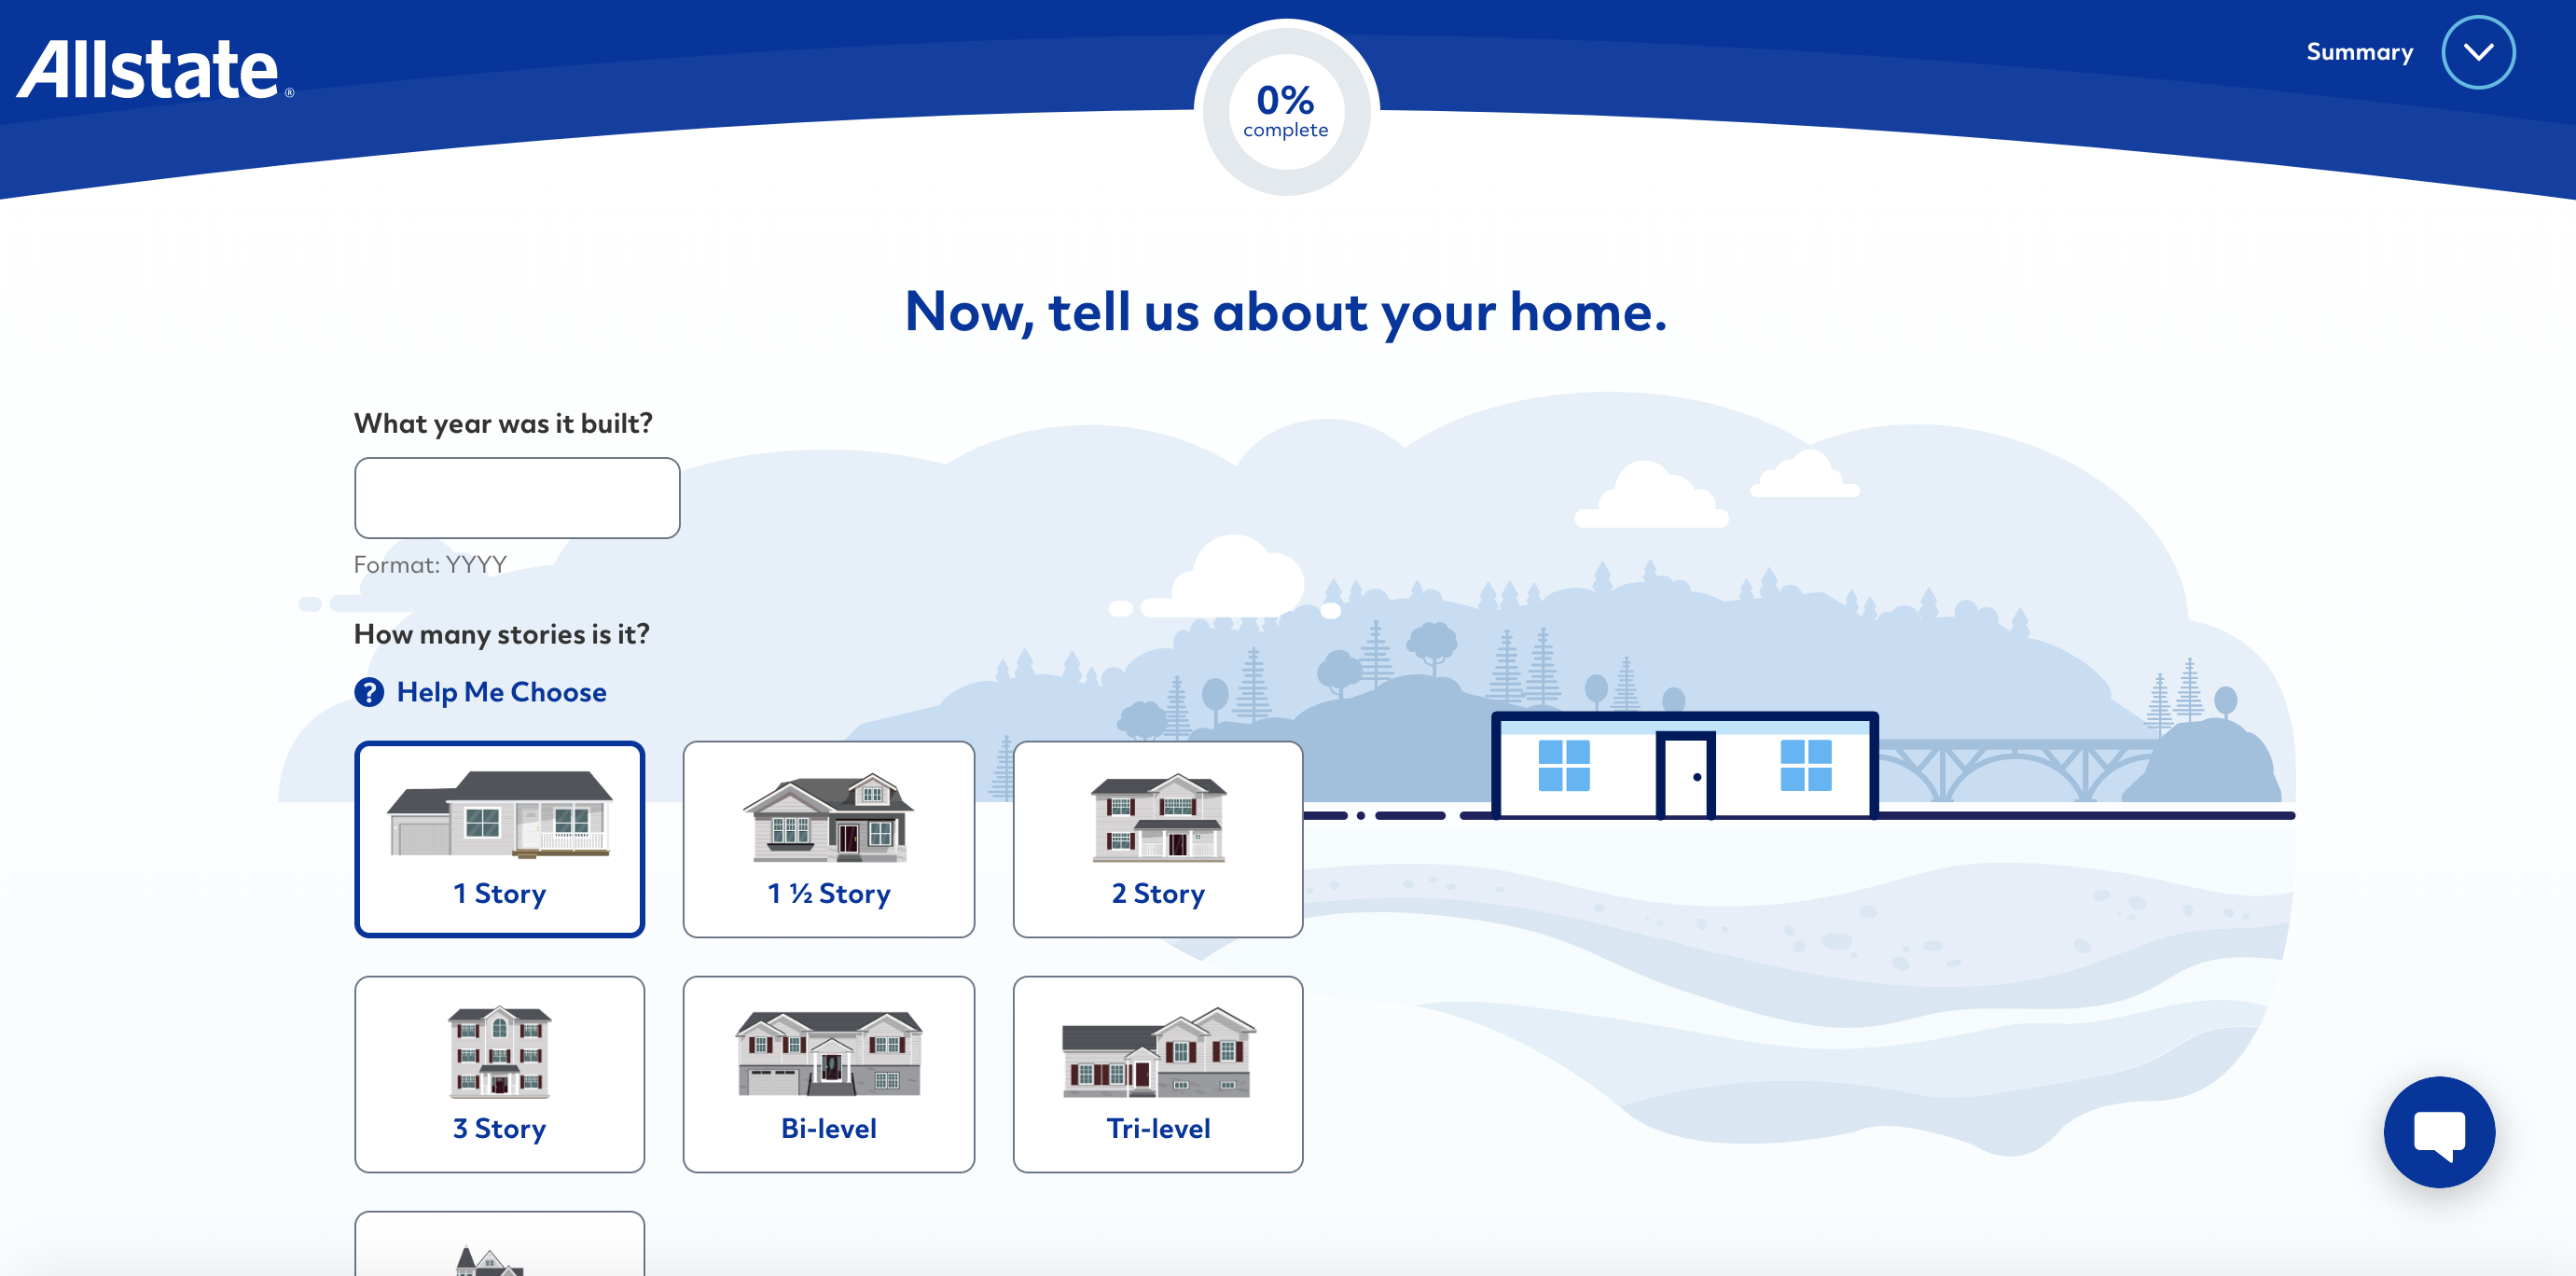 Allstate website quote Page Providing Home Information